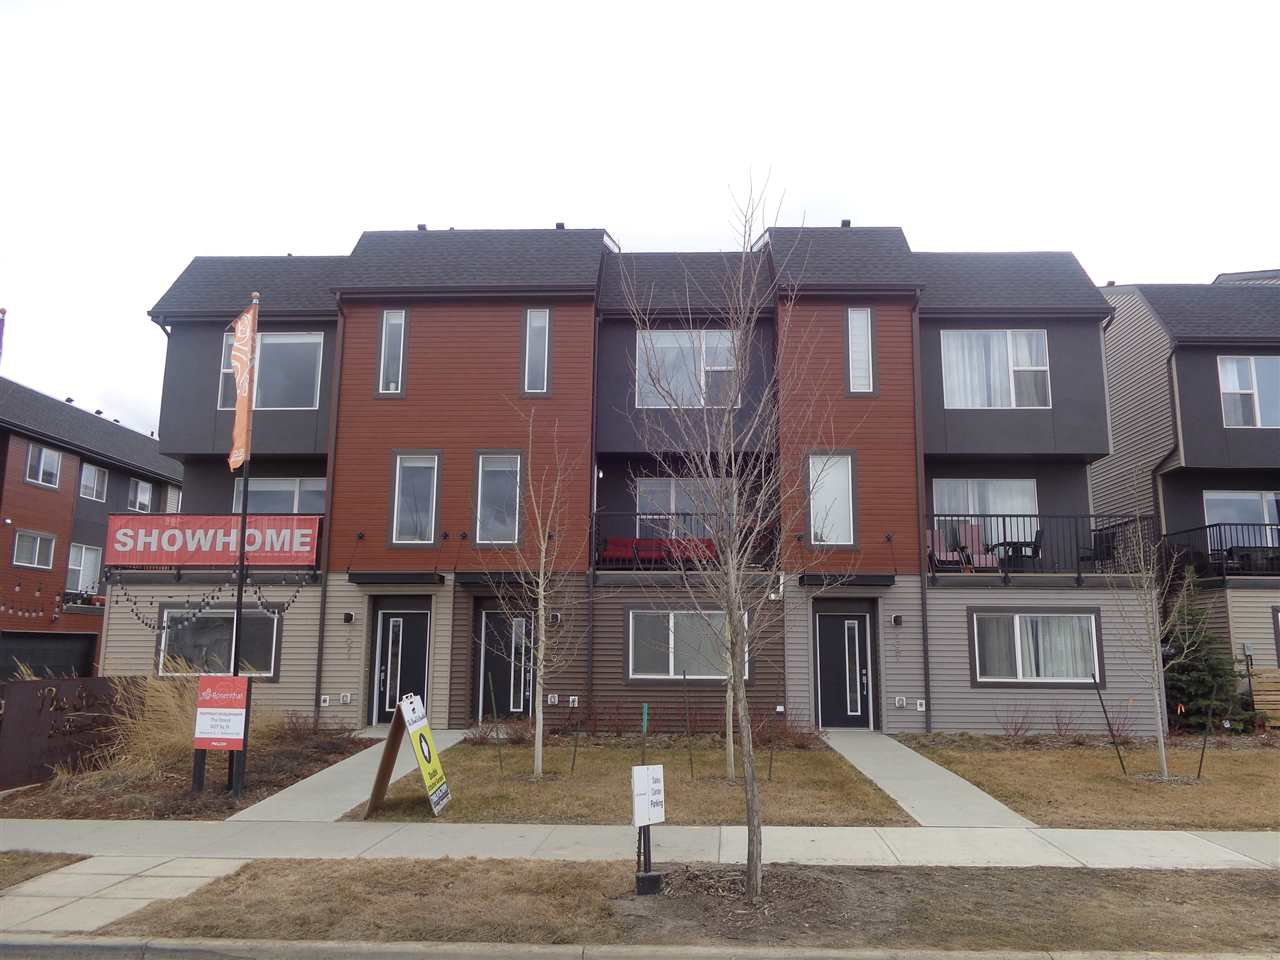 Main Photo: 1079 ROSENTHAL Boulevard in Edmonton: Zone 58 Townhouse for sale : MLS®# E4213027